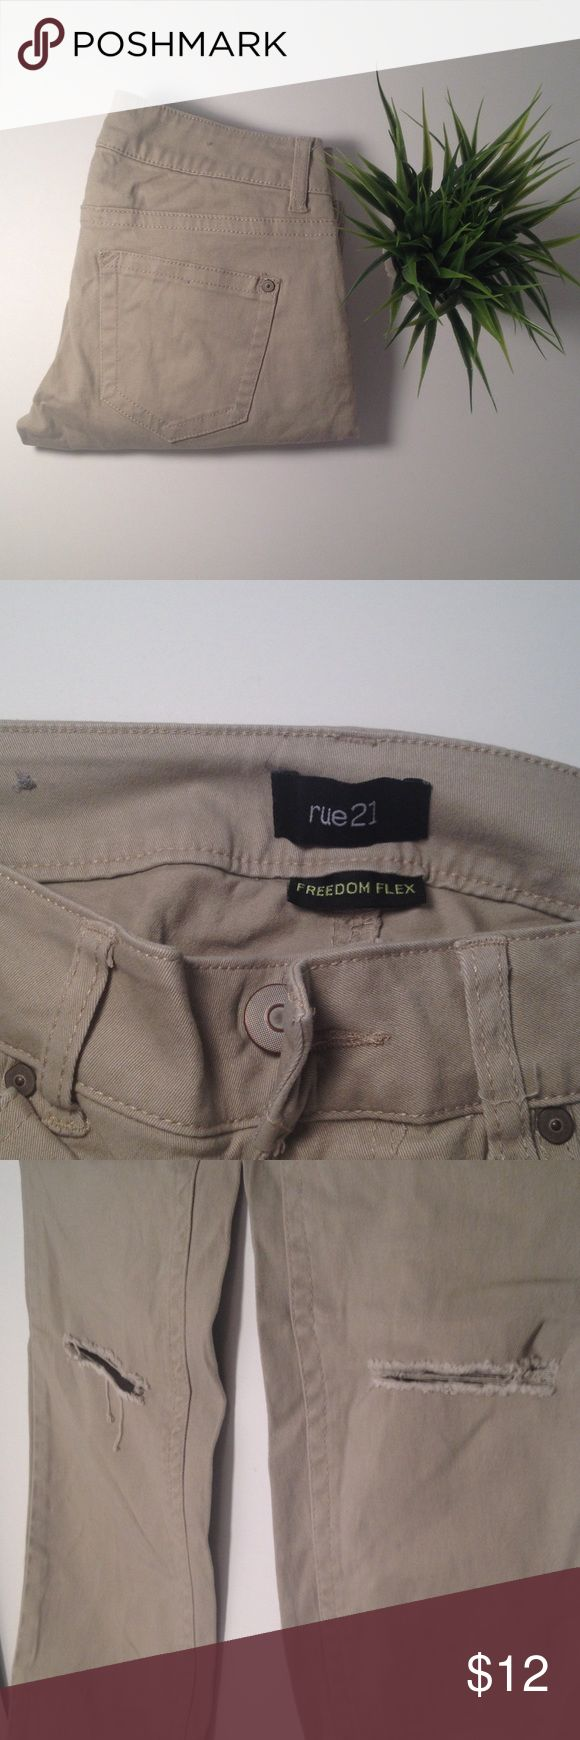 Rue 21 Freedom Flex Distressed Khaki Skinny Pants Rue 21 Freedom Flex Distressed Khaki Skinny Pants. Low Rise Jeans in a size 0. Composition is 98% cotton and 2% spandex. Rue 21 Pants Skinny